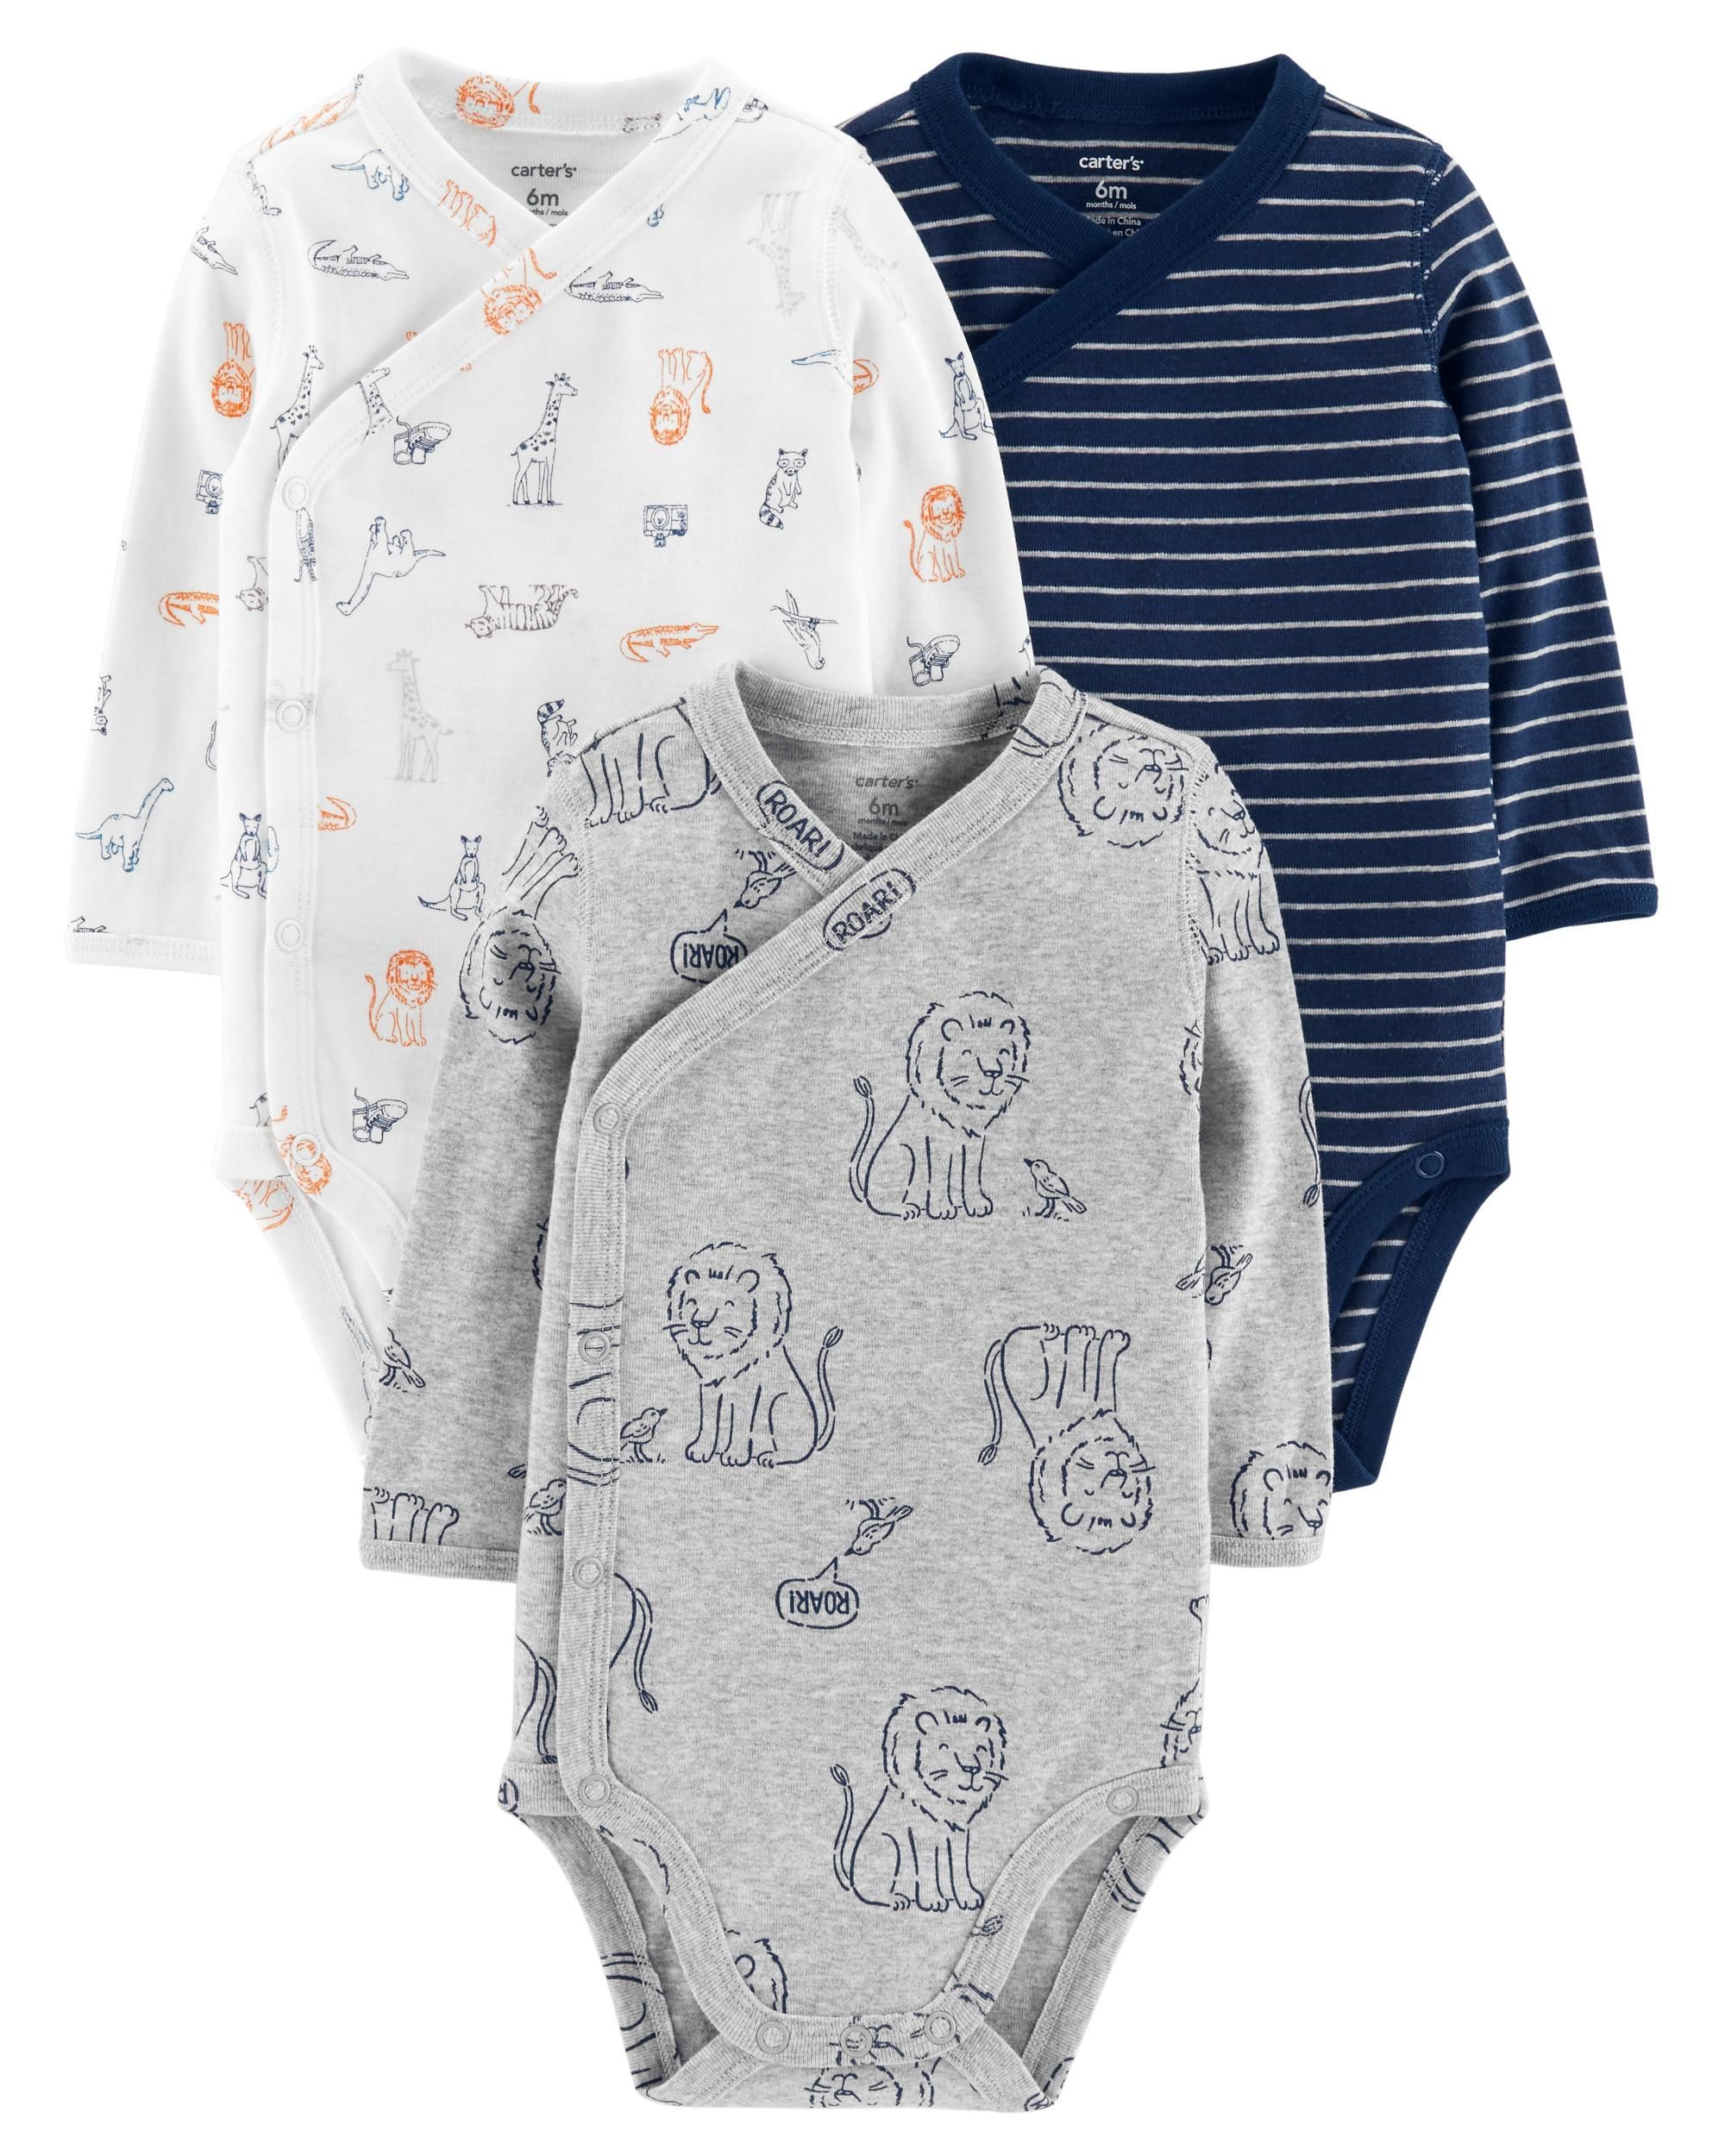 7-Pack Side-Snap Bodysuits  Boy outfits, Baby boy outfits, Baby